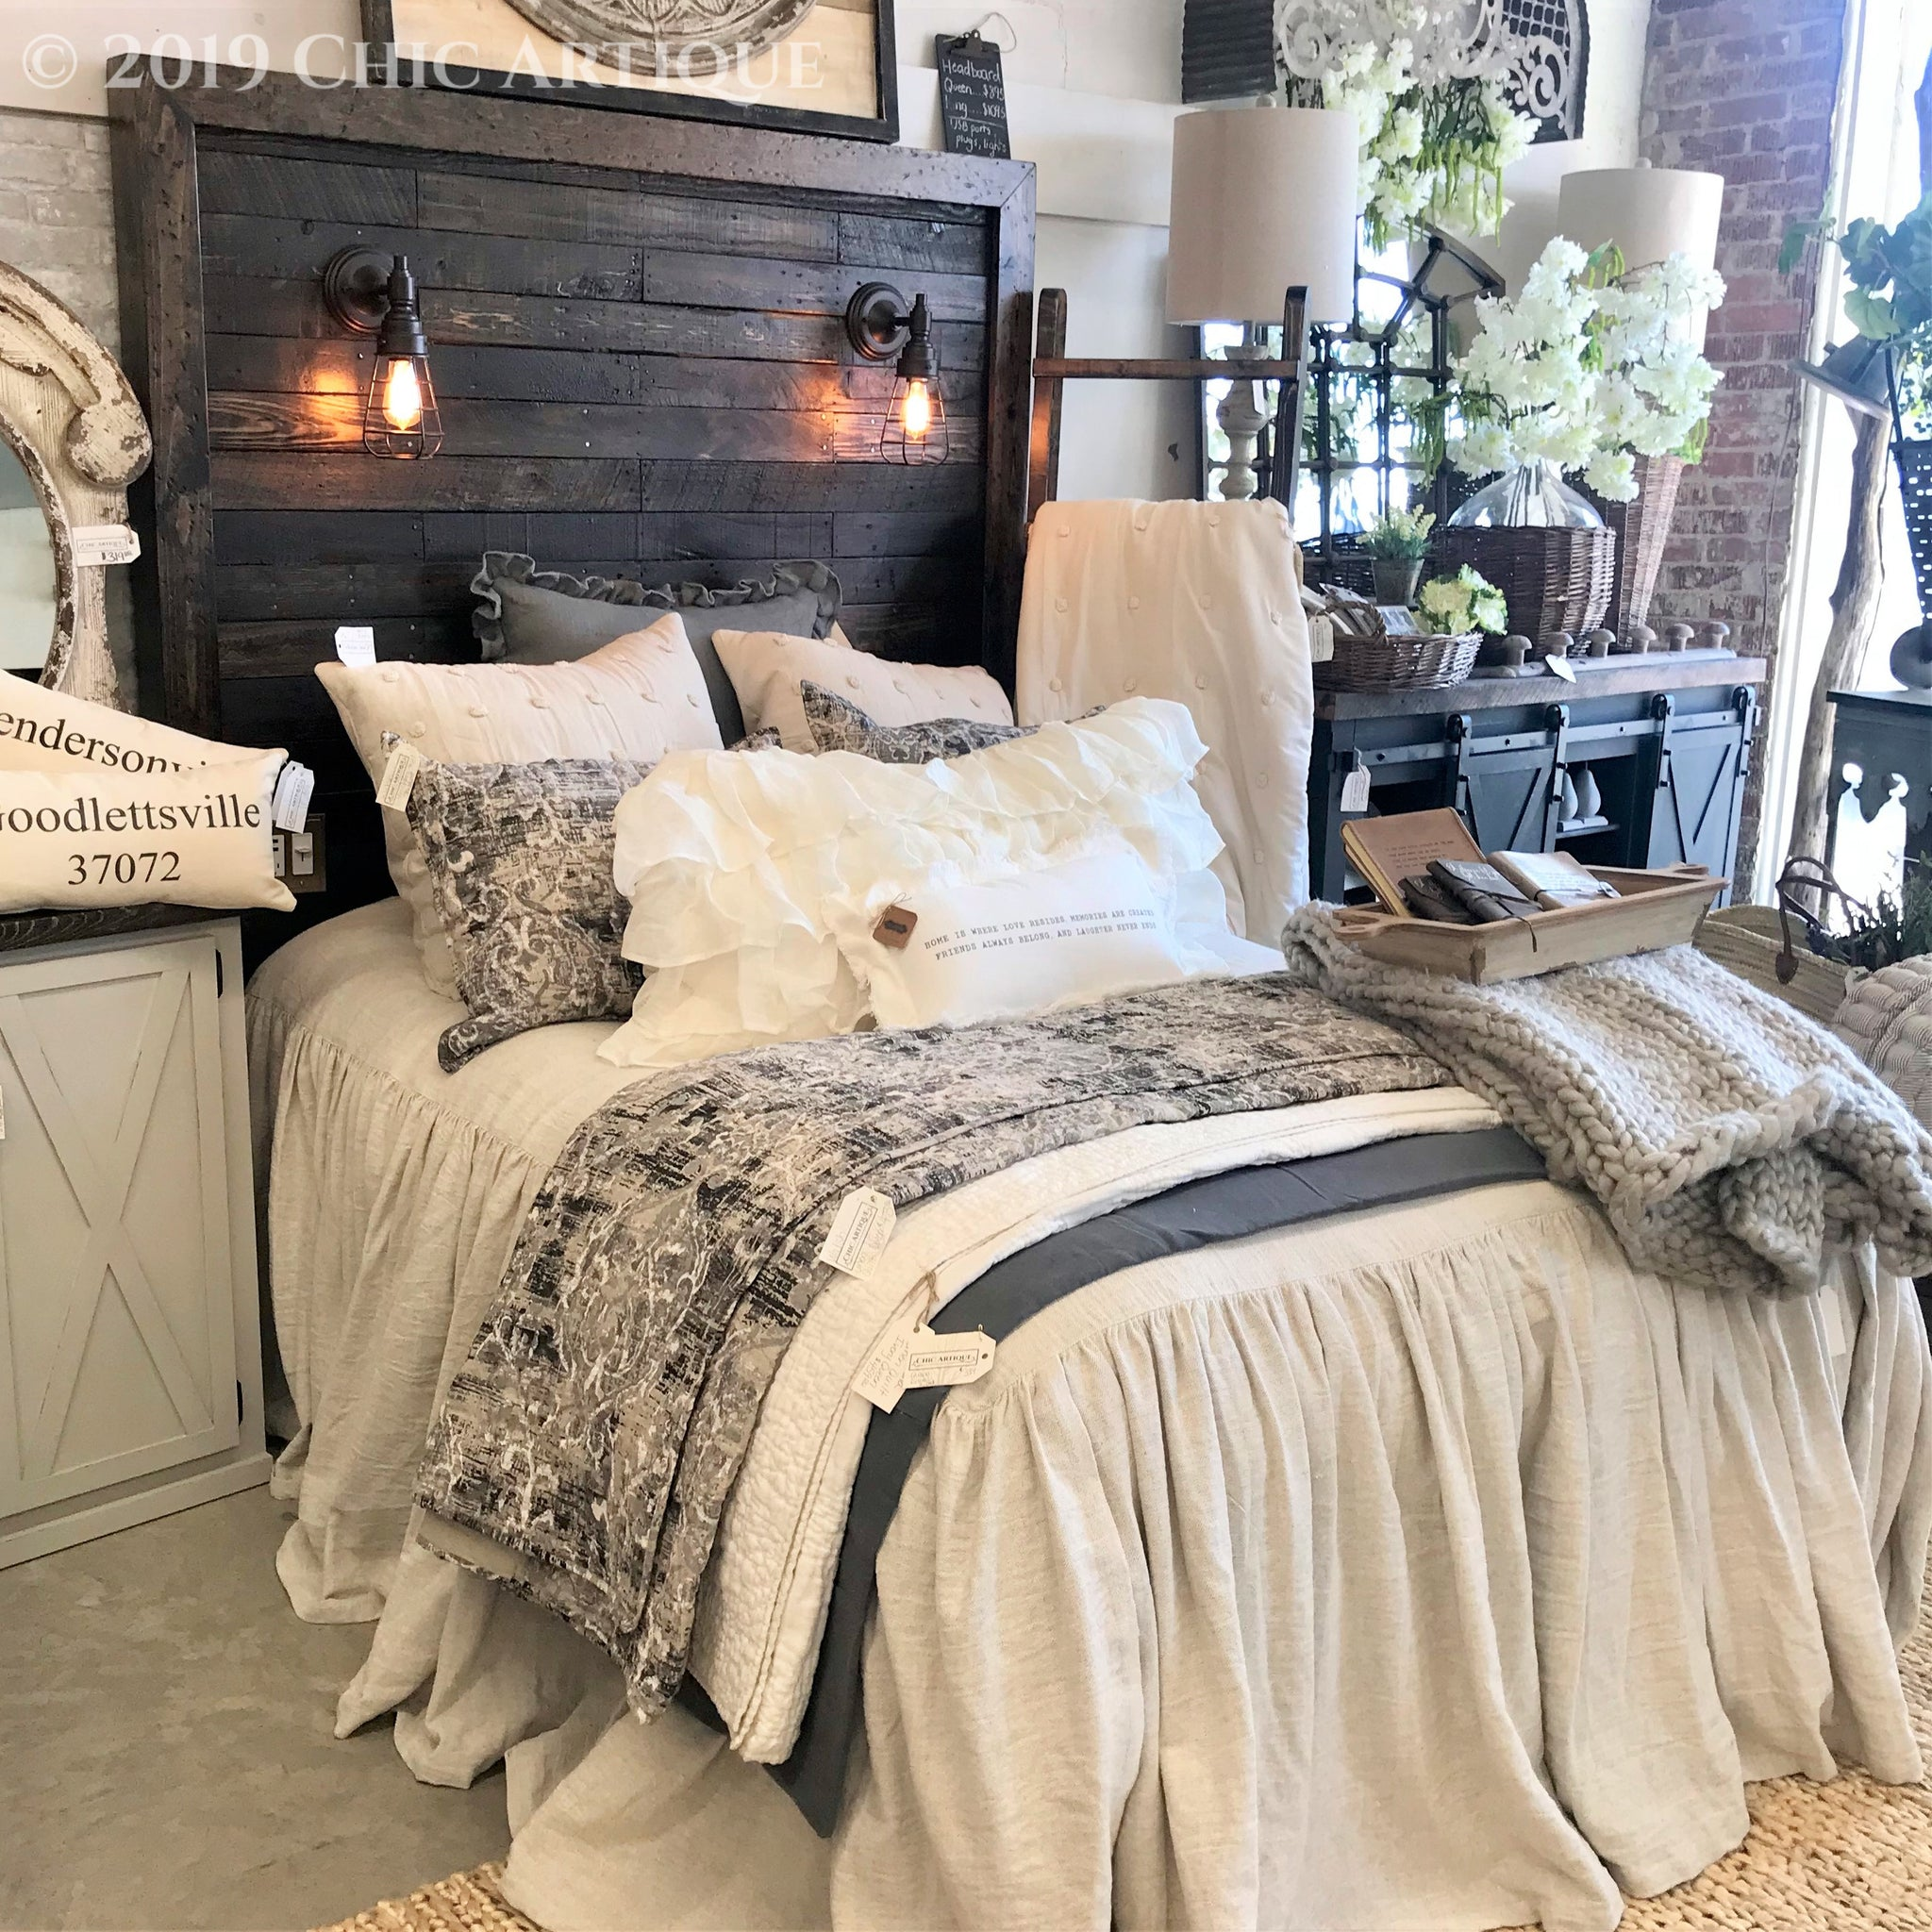 Rustic Lighted Headboard Chic Artique